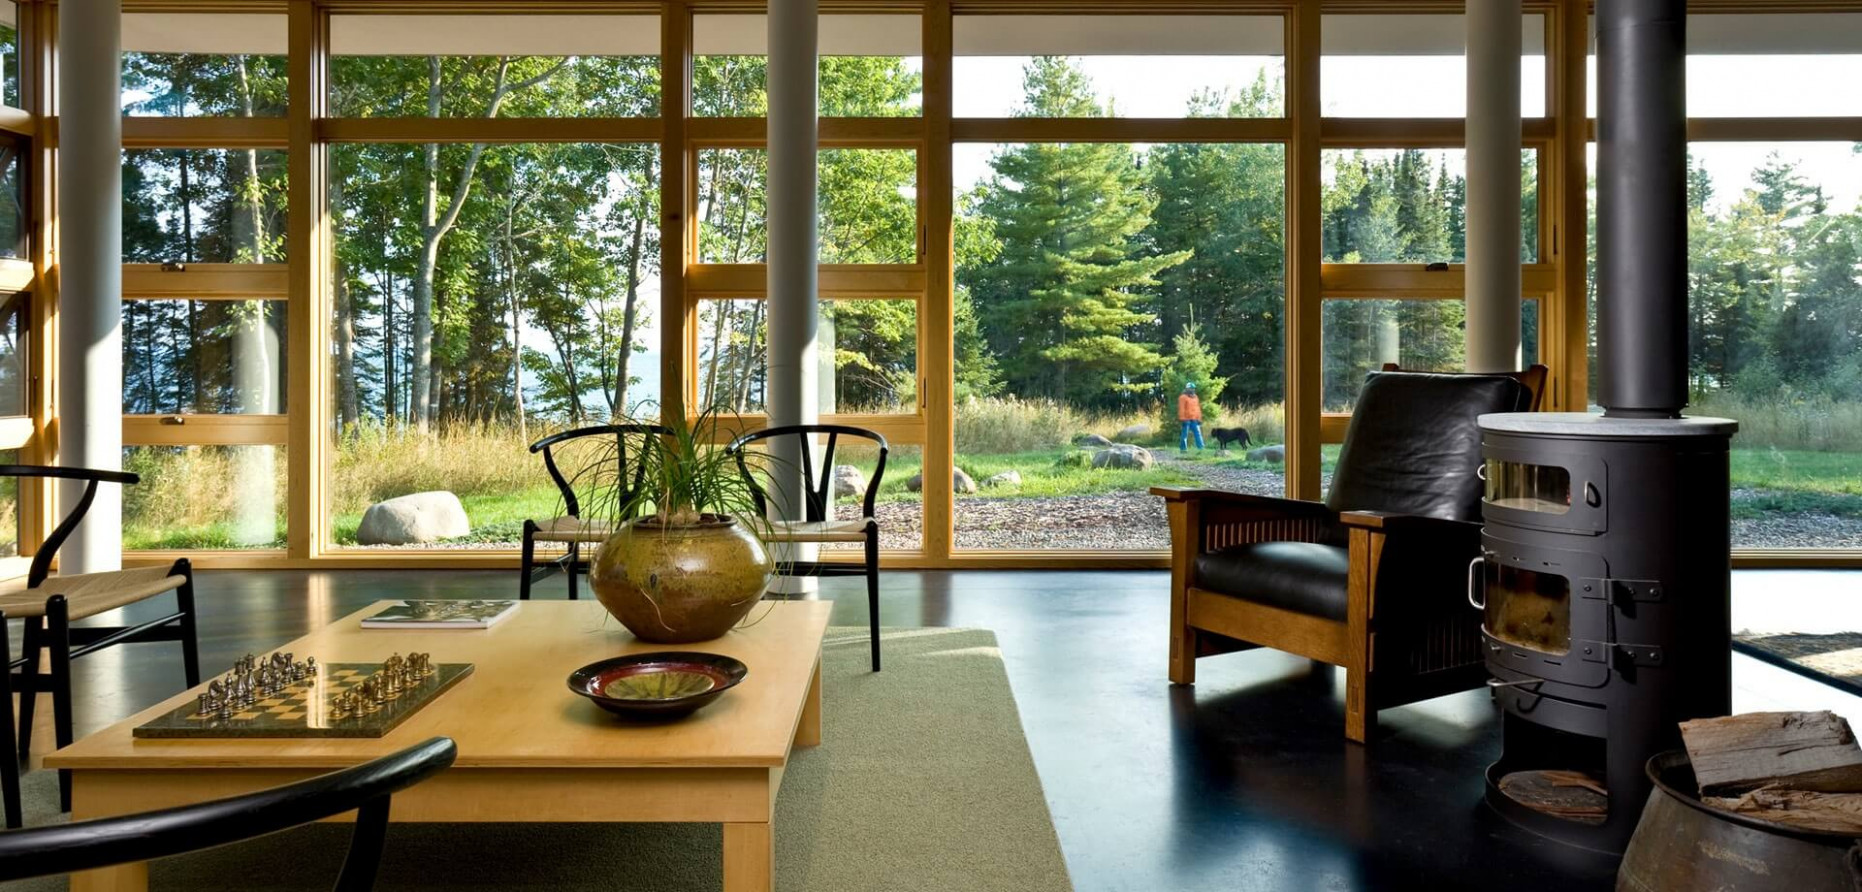 Living Rooms That Don't All Point To The Television Carport Minimalist Zen